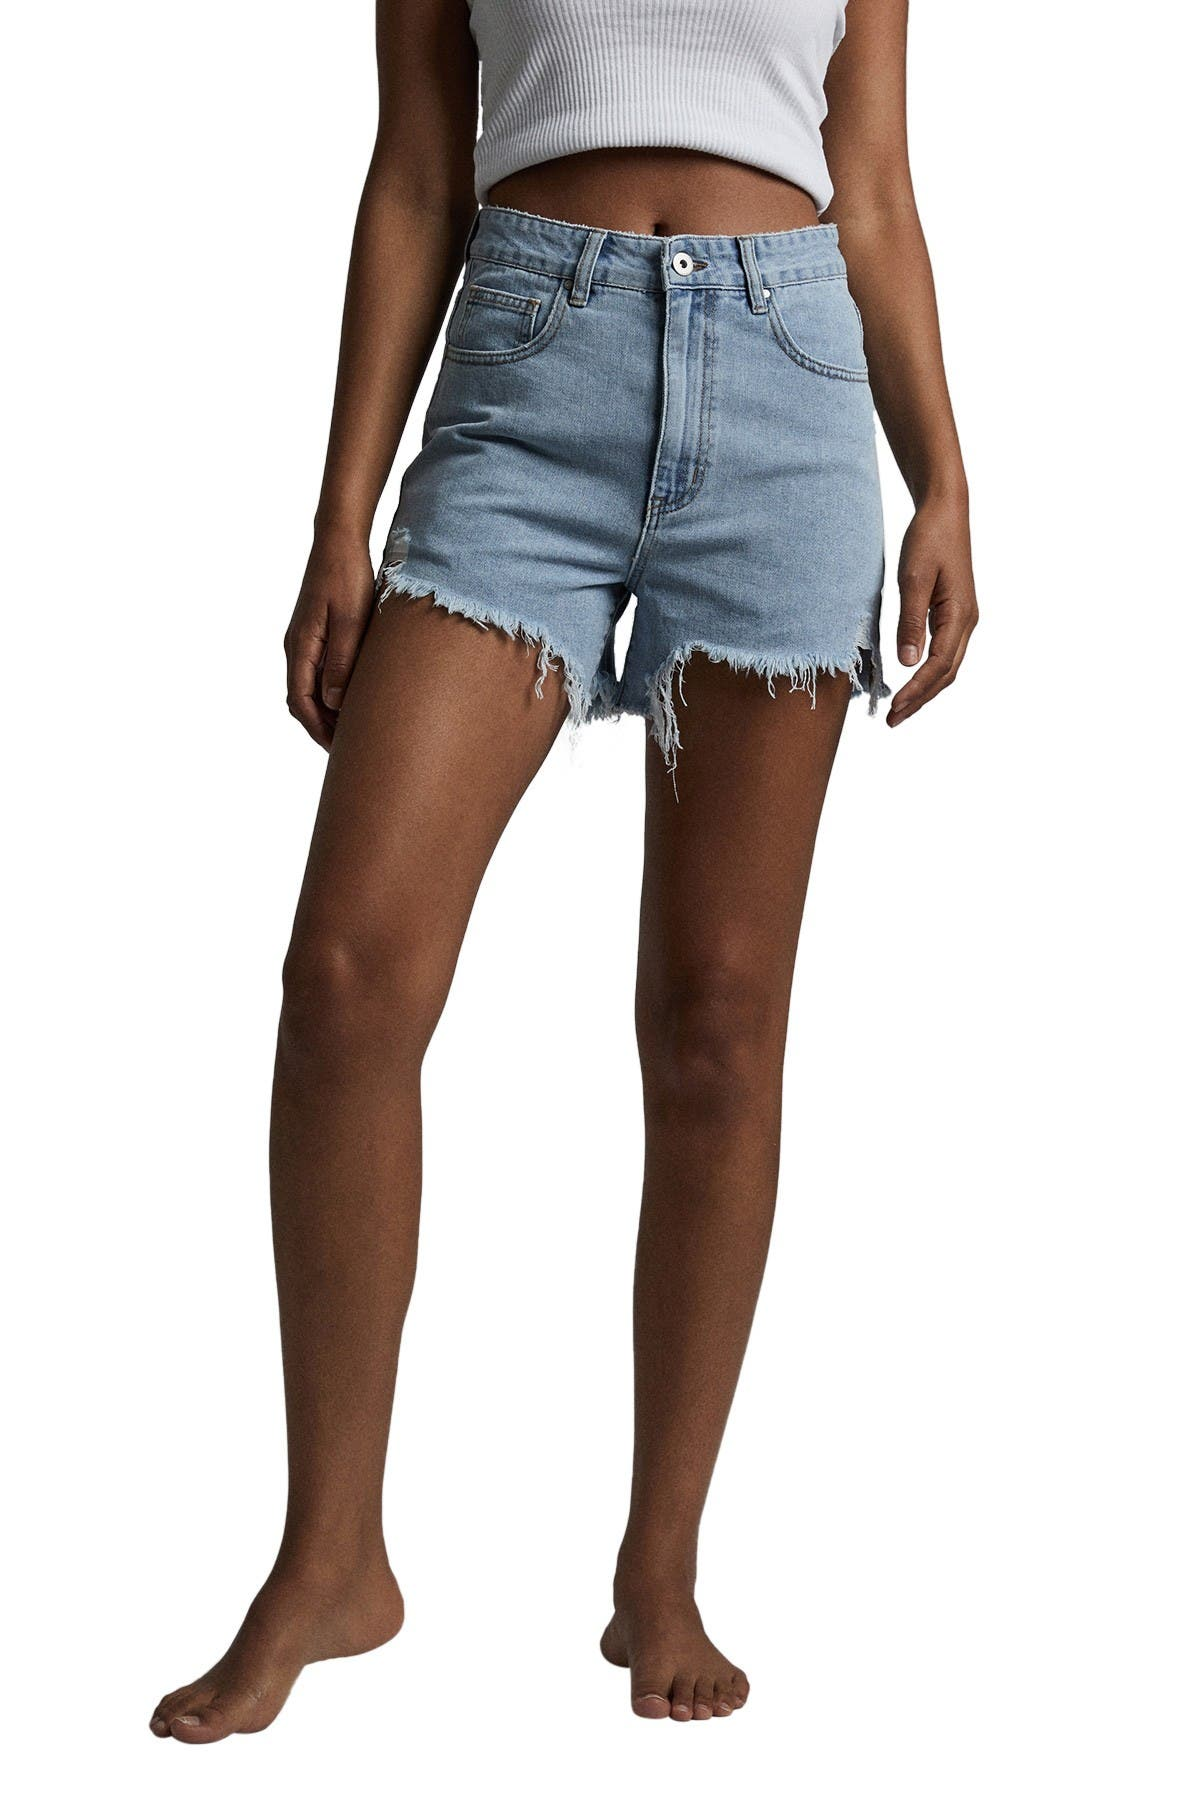 Image of Cotton On High Ripped Denim Shorts